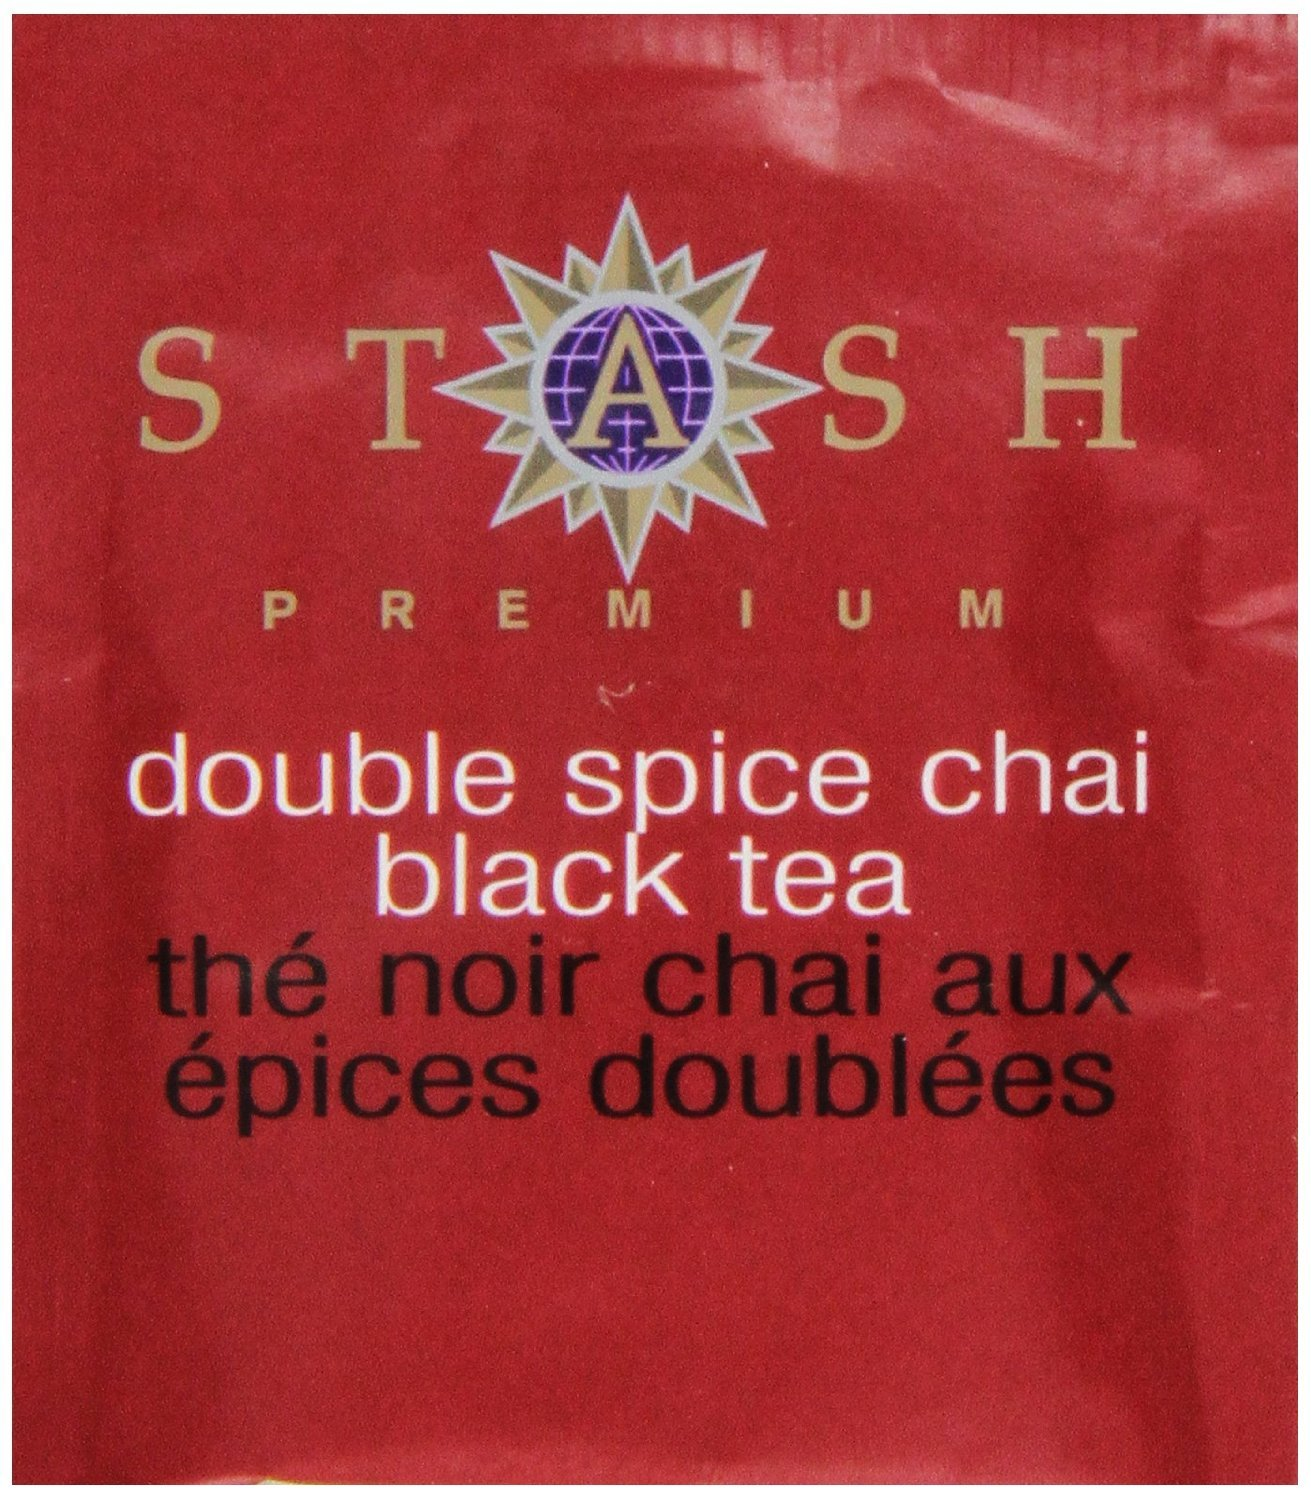 Stash Tea Double Spice Chai Black Tea, 10 Count Tea Bags in Foil (Pack of 12), (packaging may vary) by Stash Tea (Image #4)